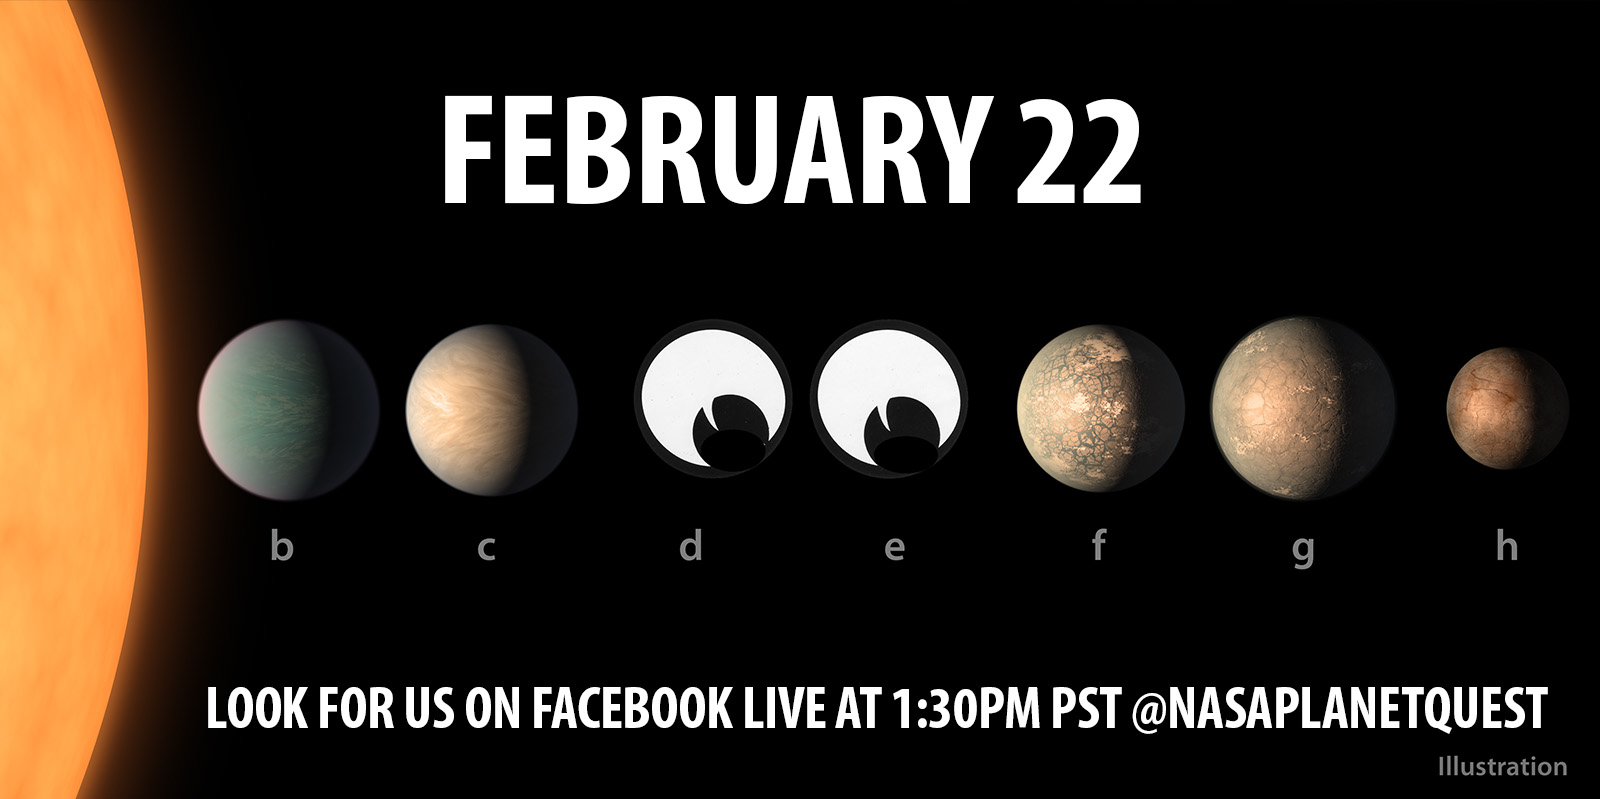 Ad says: Feb. 22, Look for us on Facebook Live at 1:30 p.m. PST @nasaplanetquest